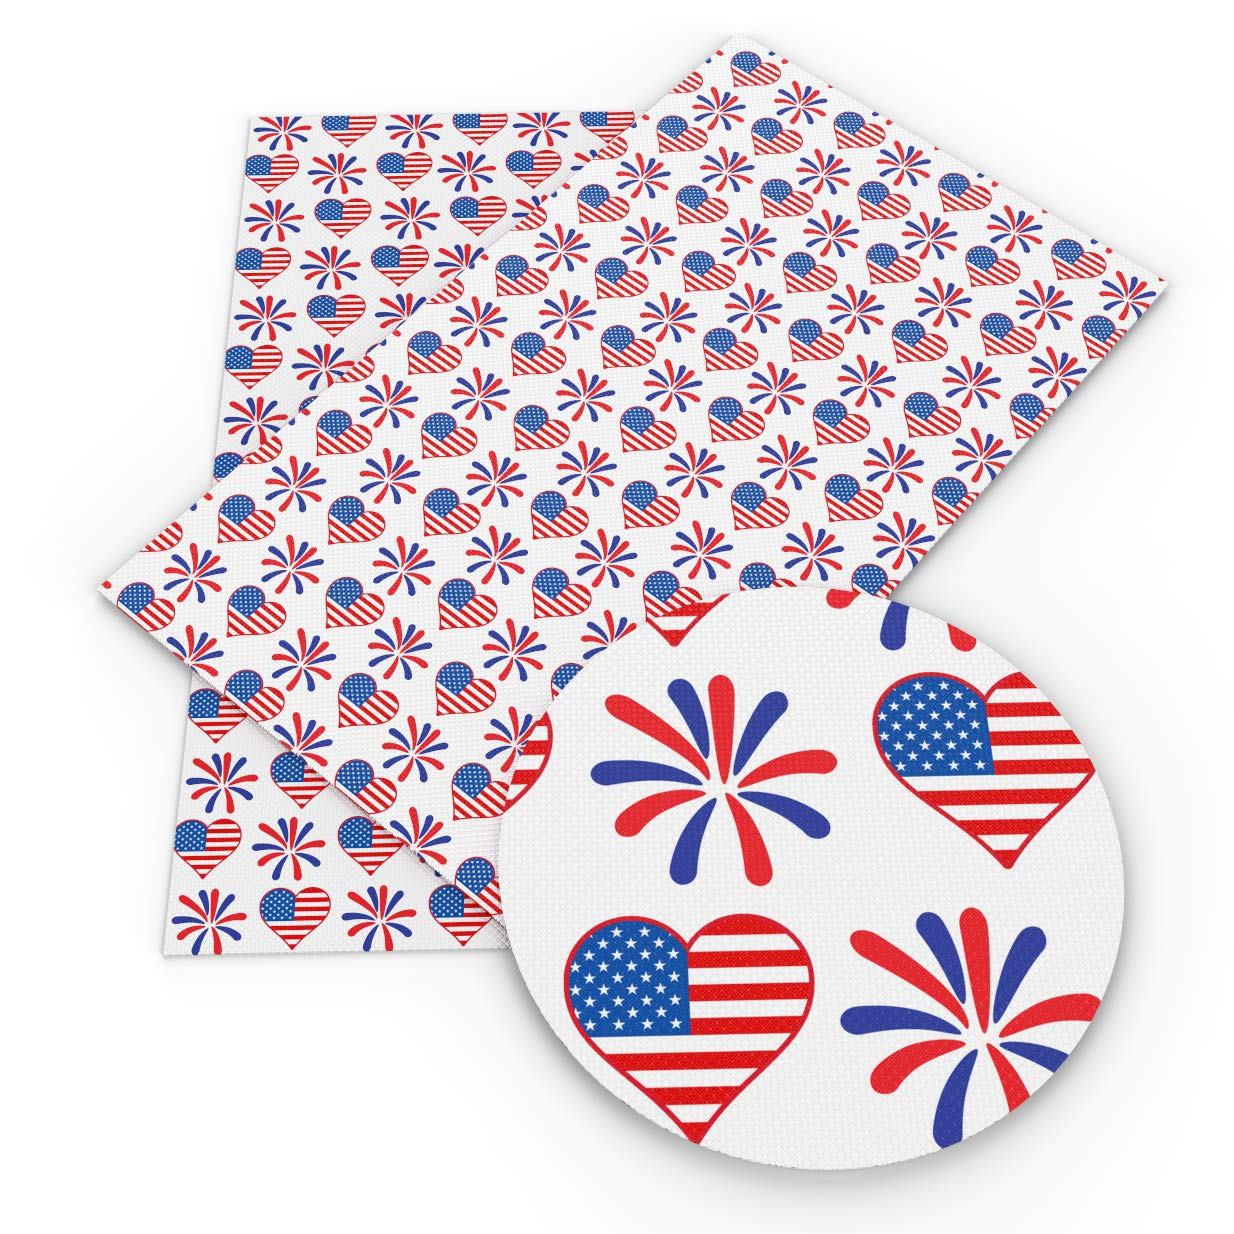 David Angie July 4th The Independence Day Theme Printed Faux Leather Fabric Sheet 9 Pcs 8'' x 13'' (20 cm x 34 cm) DIY Handmade Material for Celebrate (Festival Leather B) by David Angie (Image #7)